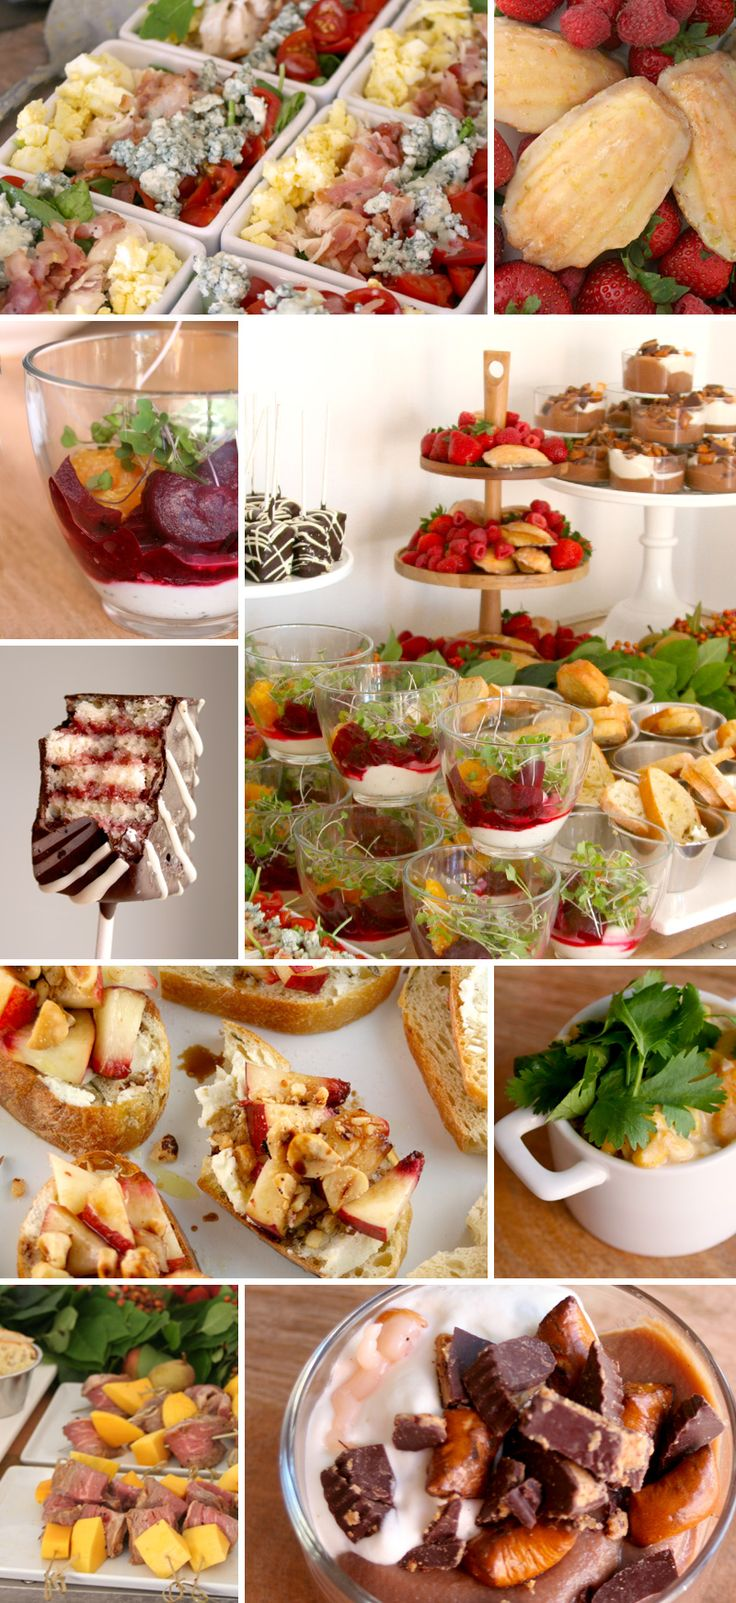 Baby Shower Food Ideas: Baby Shower Menu Ideas Appetizers